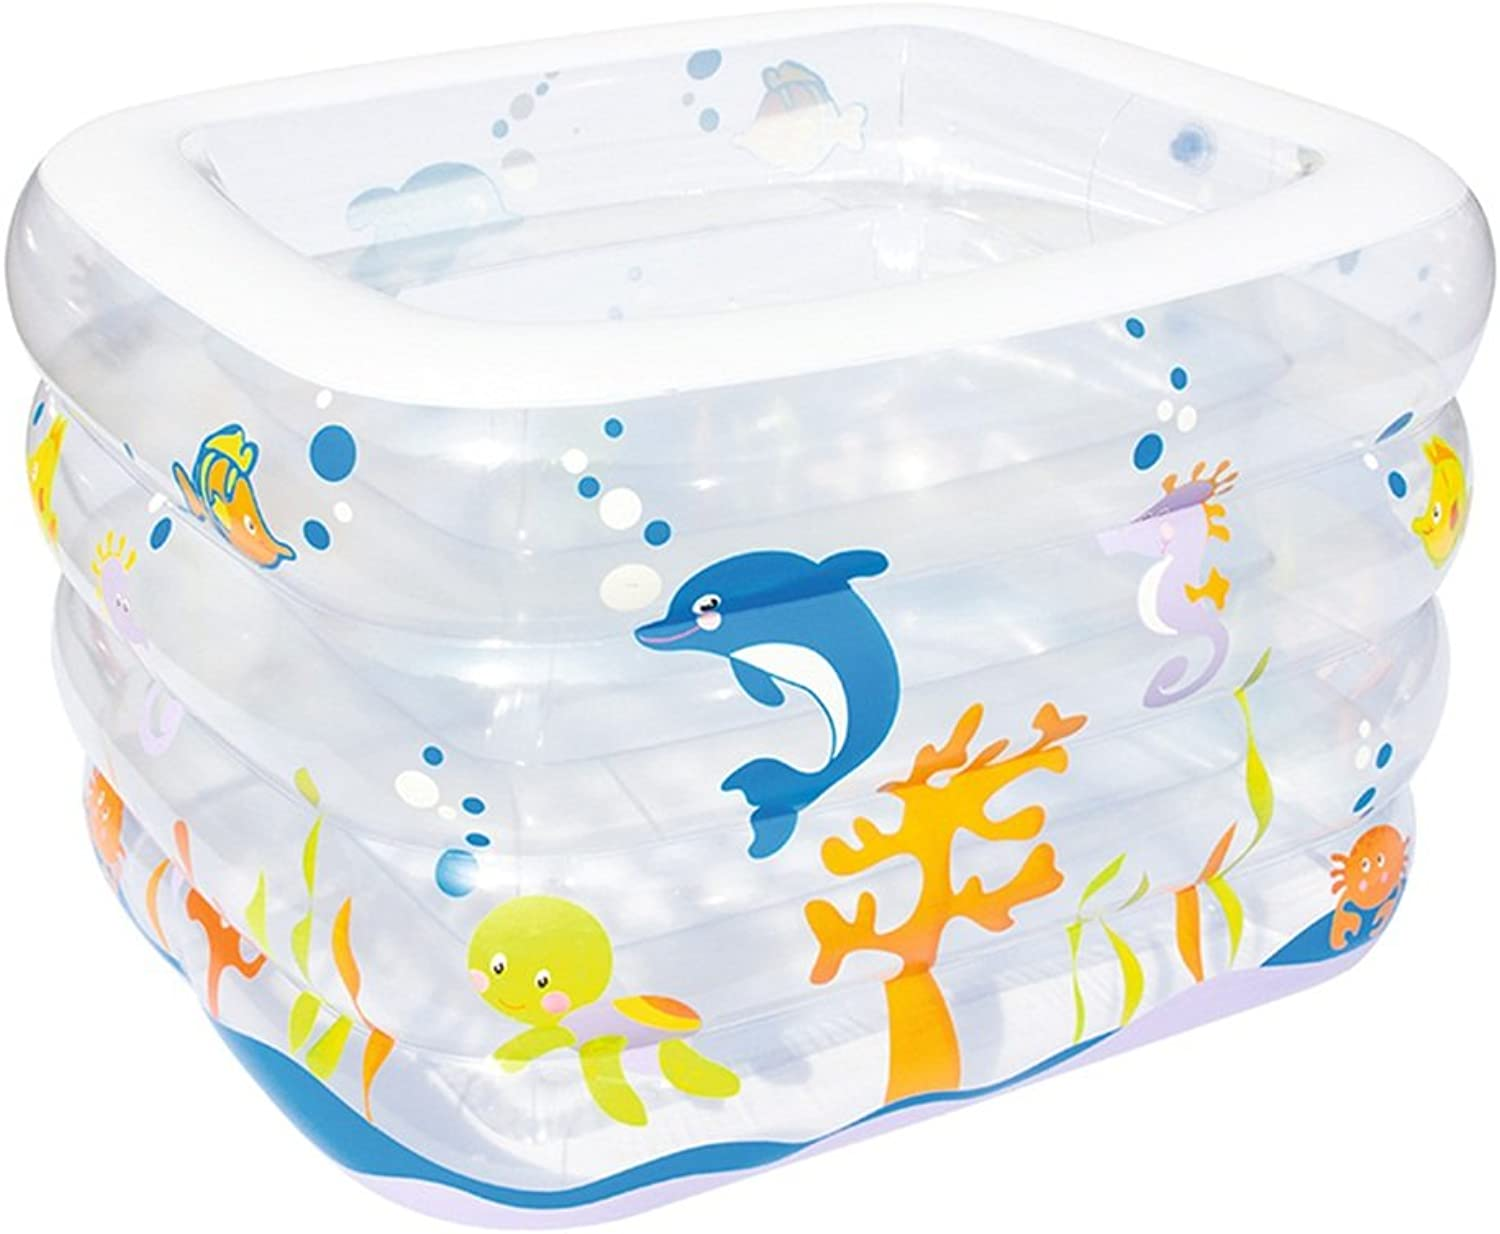 Transparent Baby Swimming Pool Paddling Pool Thicken Inflatable Square Pool Family Baby Swimming Pool Size S 120  105  75 L 140  110  75cm (Size   L)